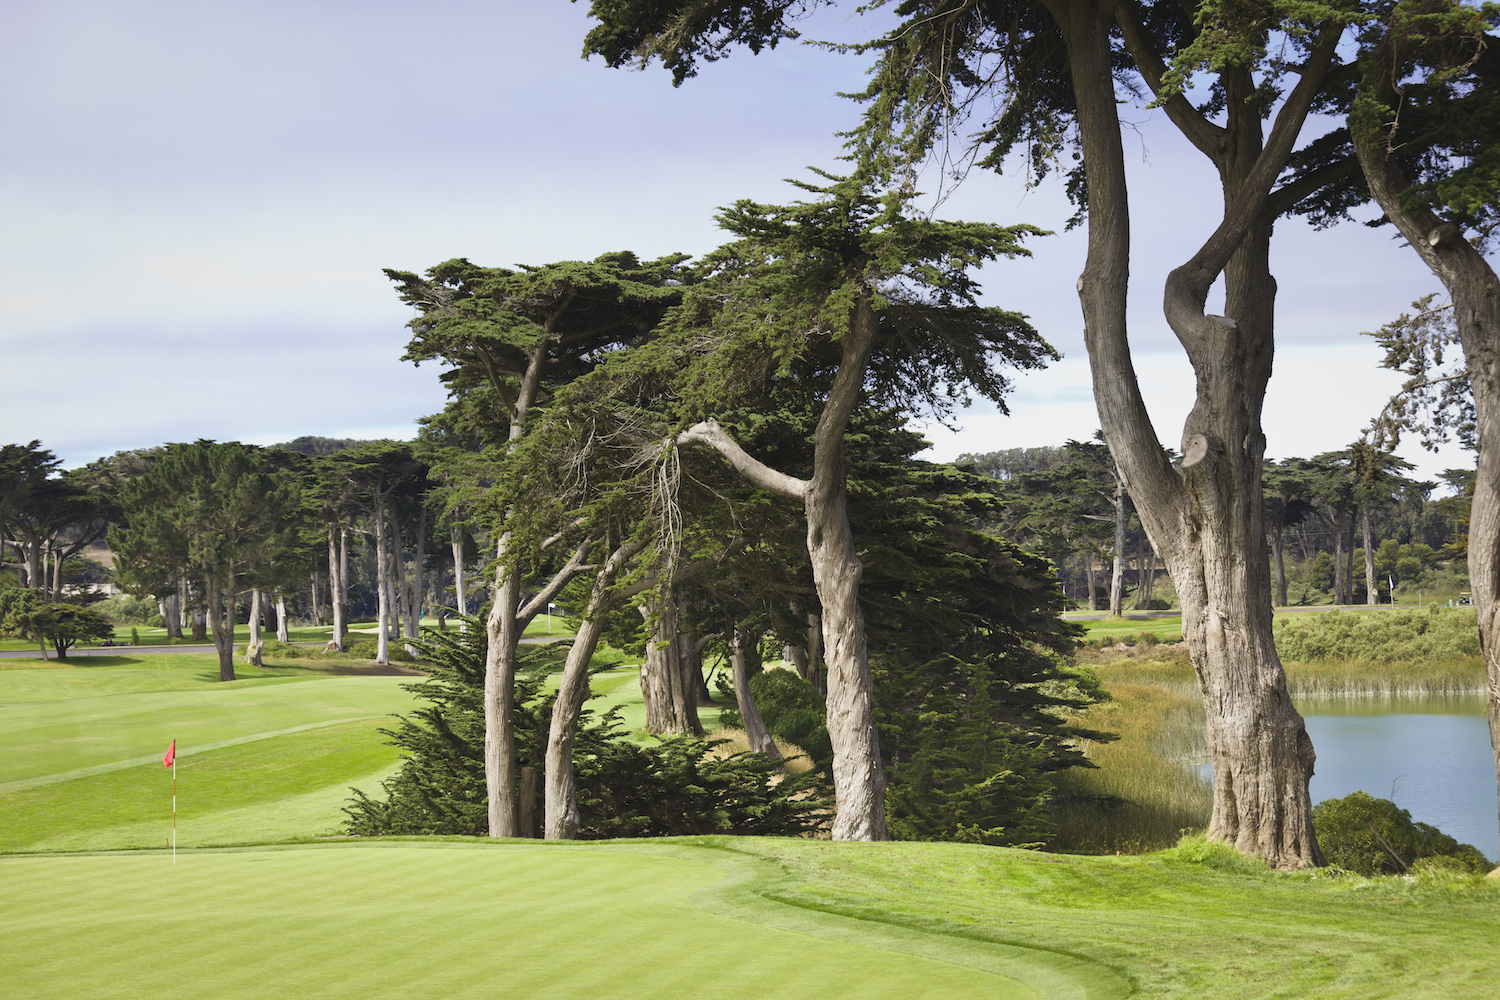 18th hole of the Harding Park Golf Course